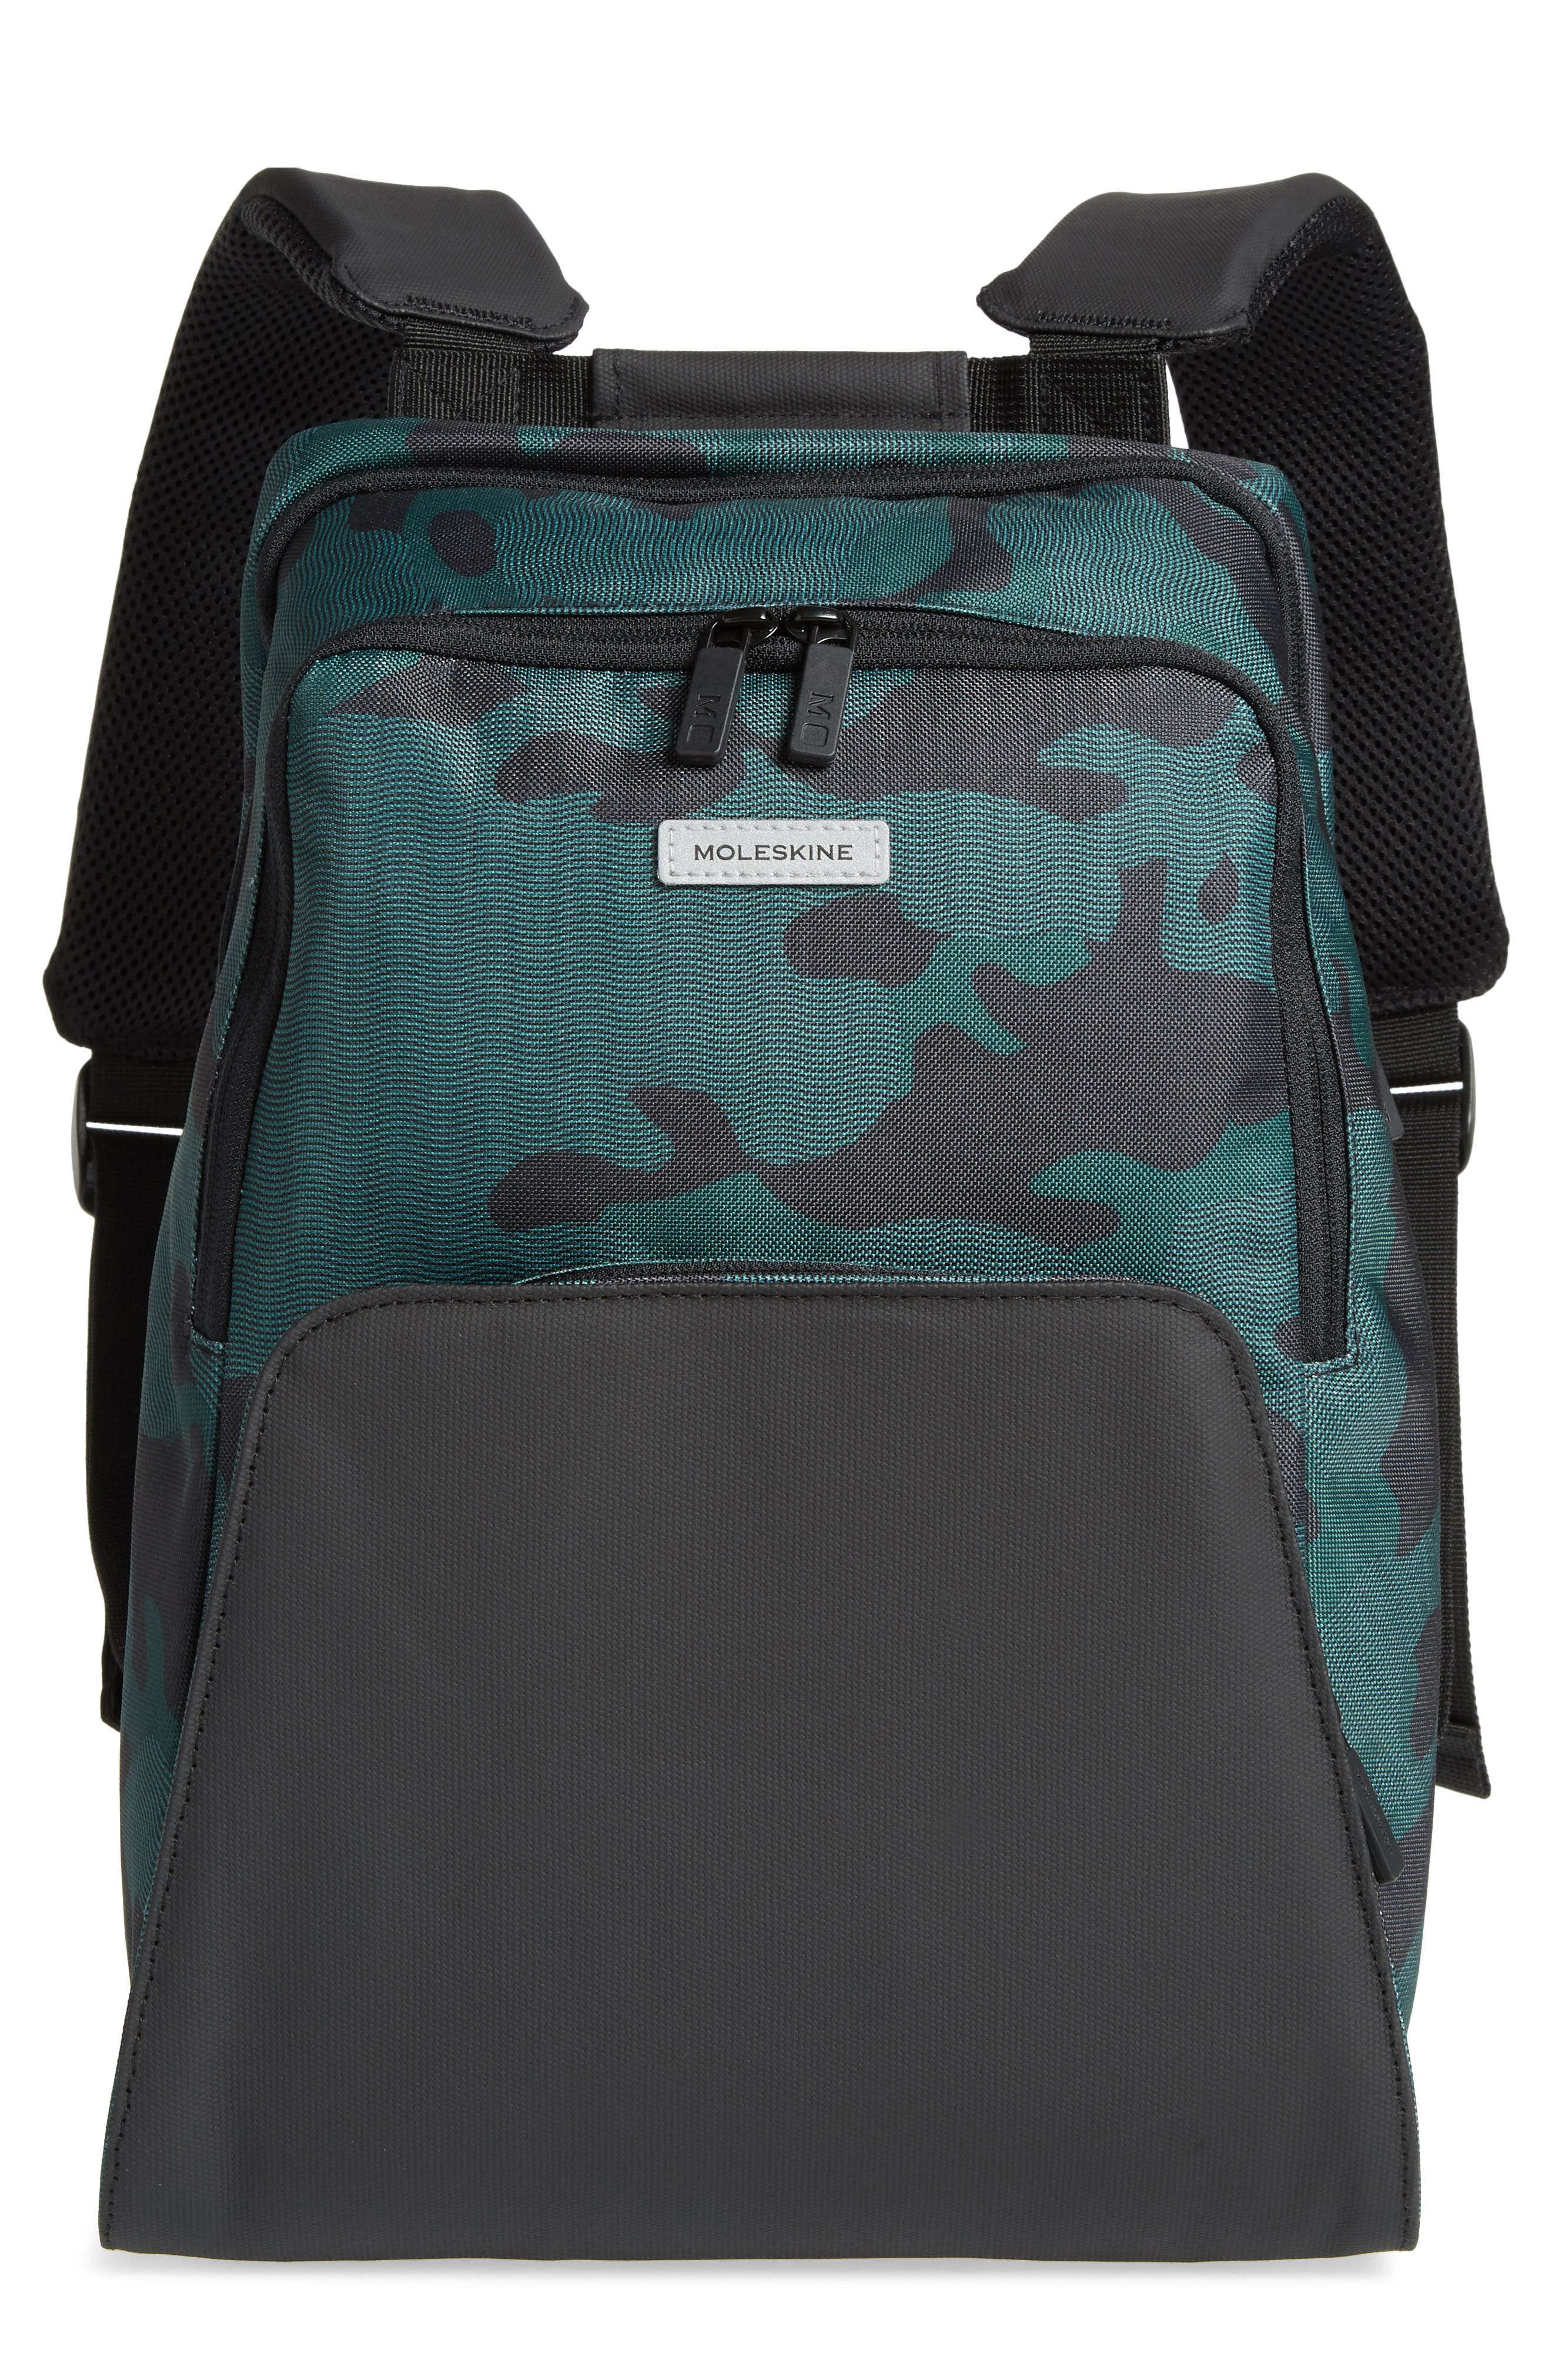 Nomad Water Resistant Backpack,                             Main thumbnail 1, color,                             300